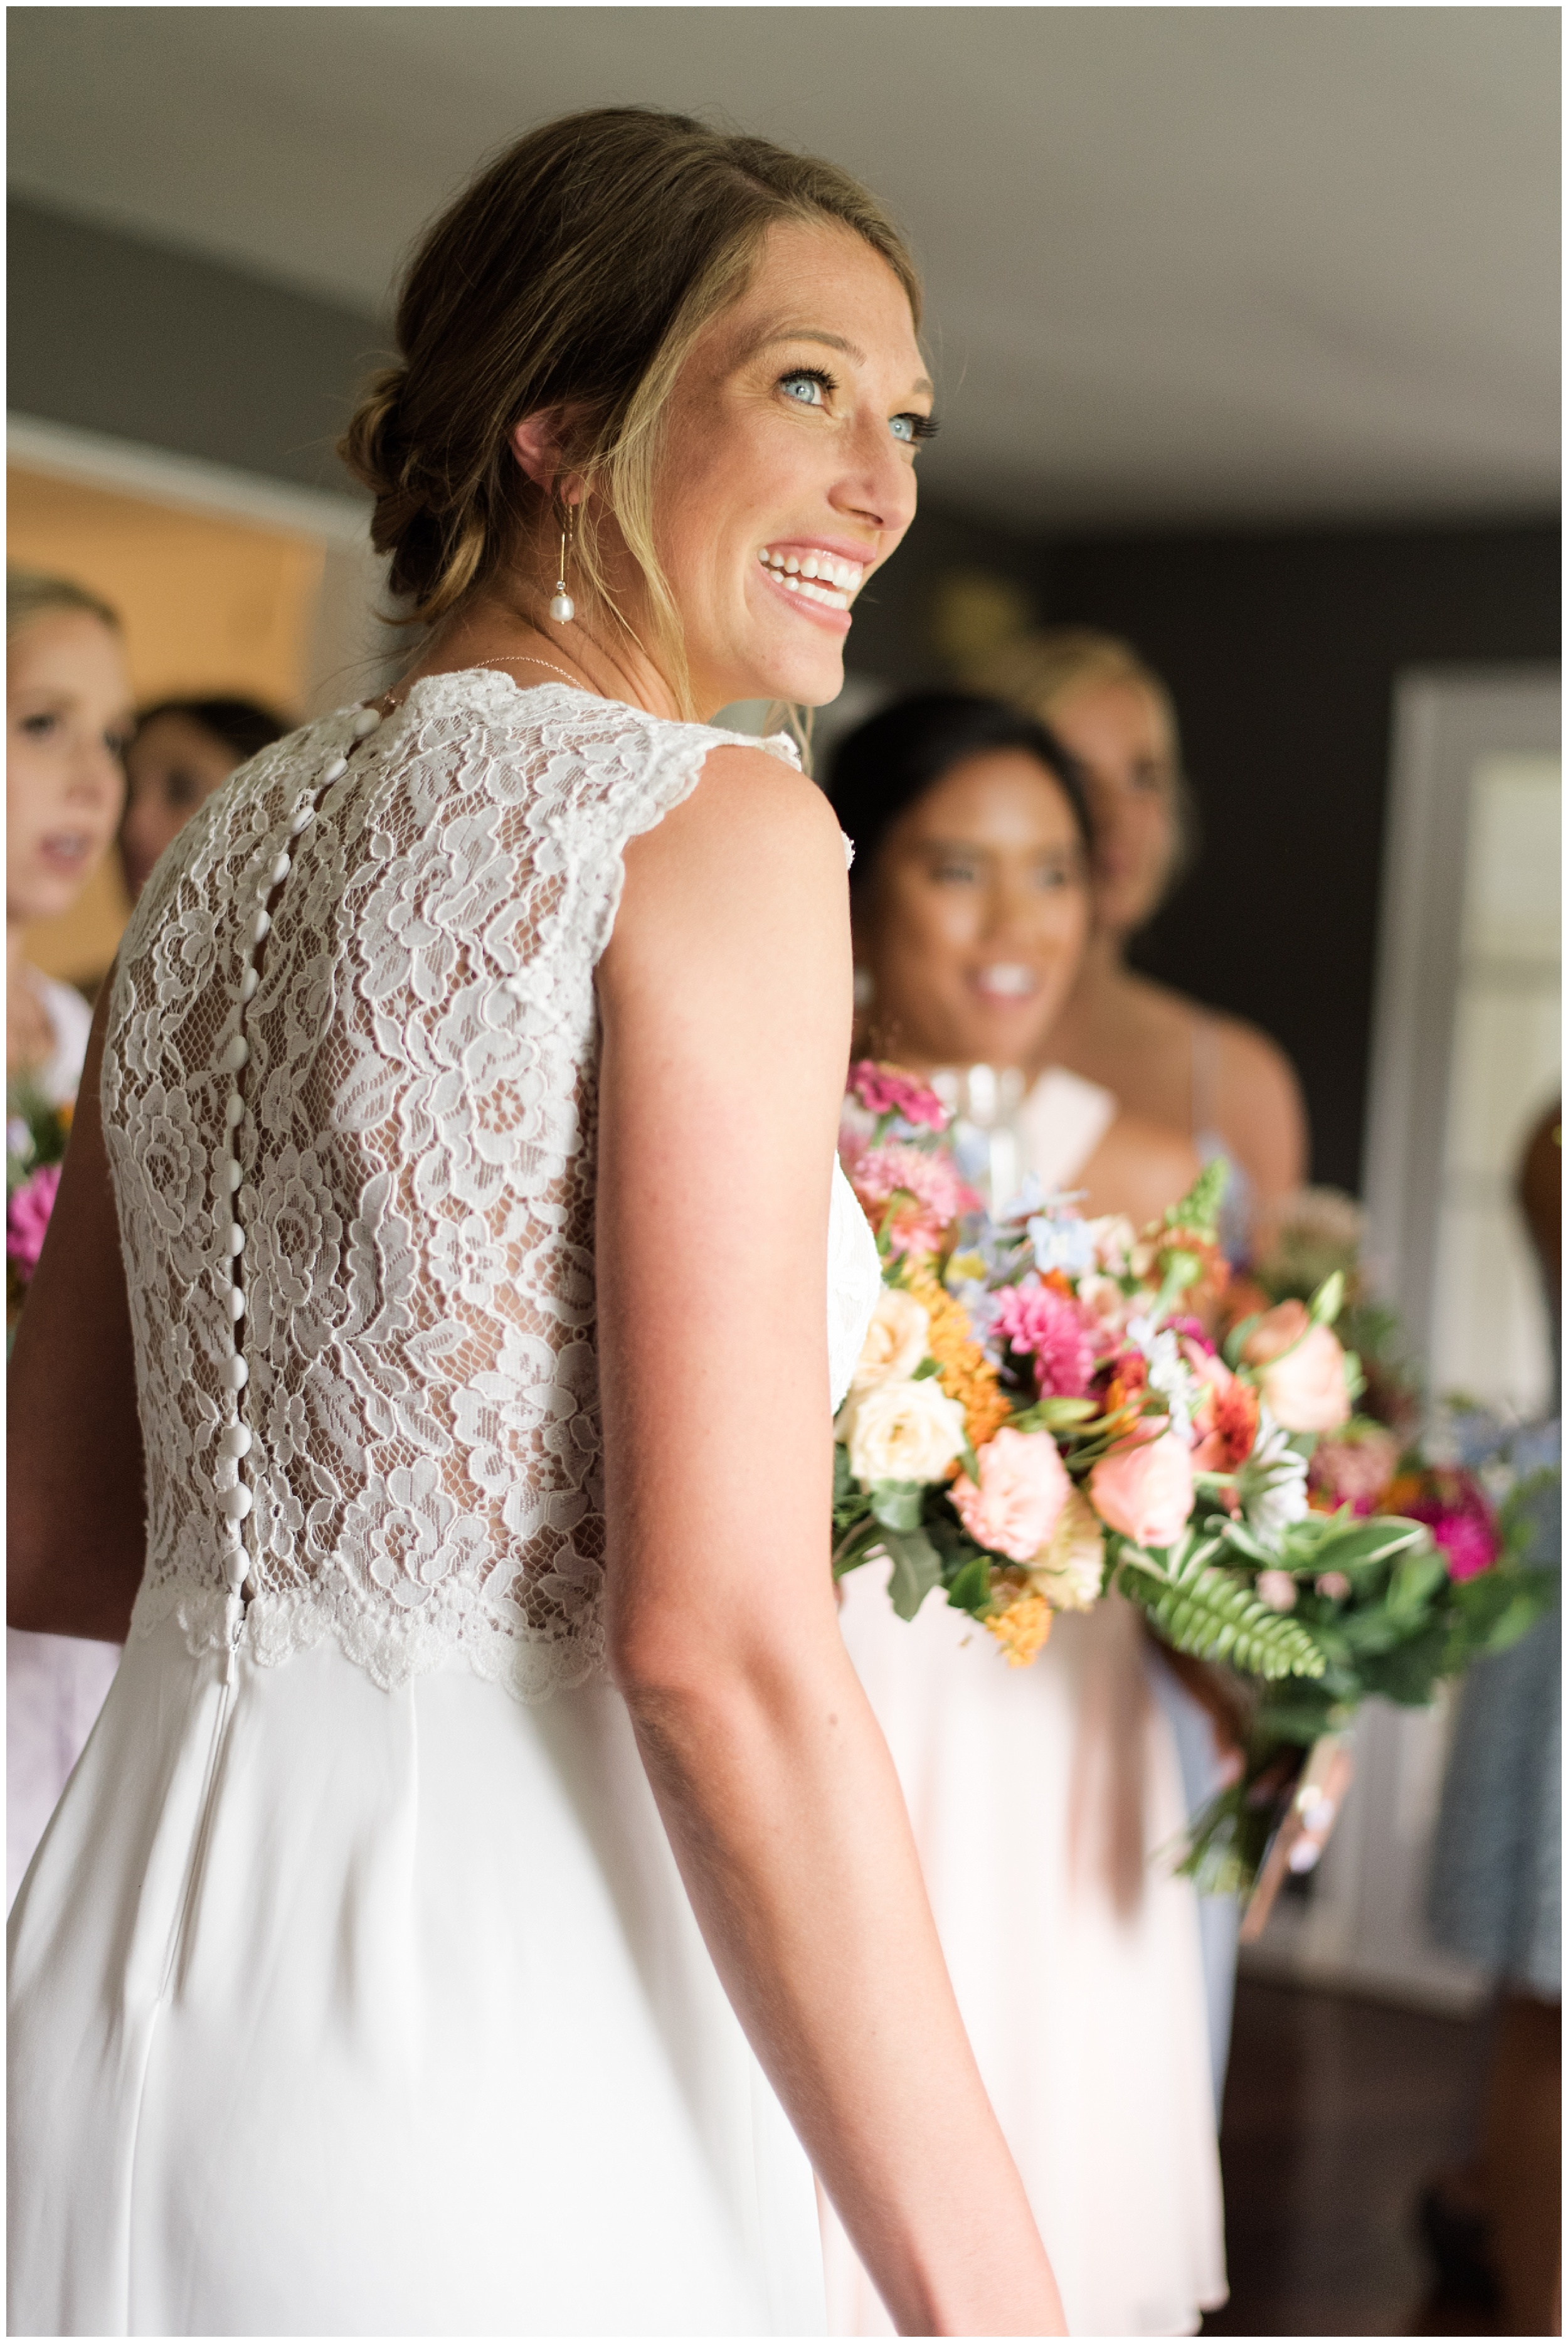 Whimsical-Ethereal-July-Kalamazoo-Wedding-Bright-Airy-Documentary-Milwaukee-Photographer_0027.jpg